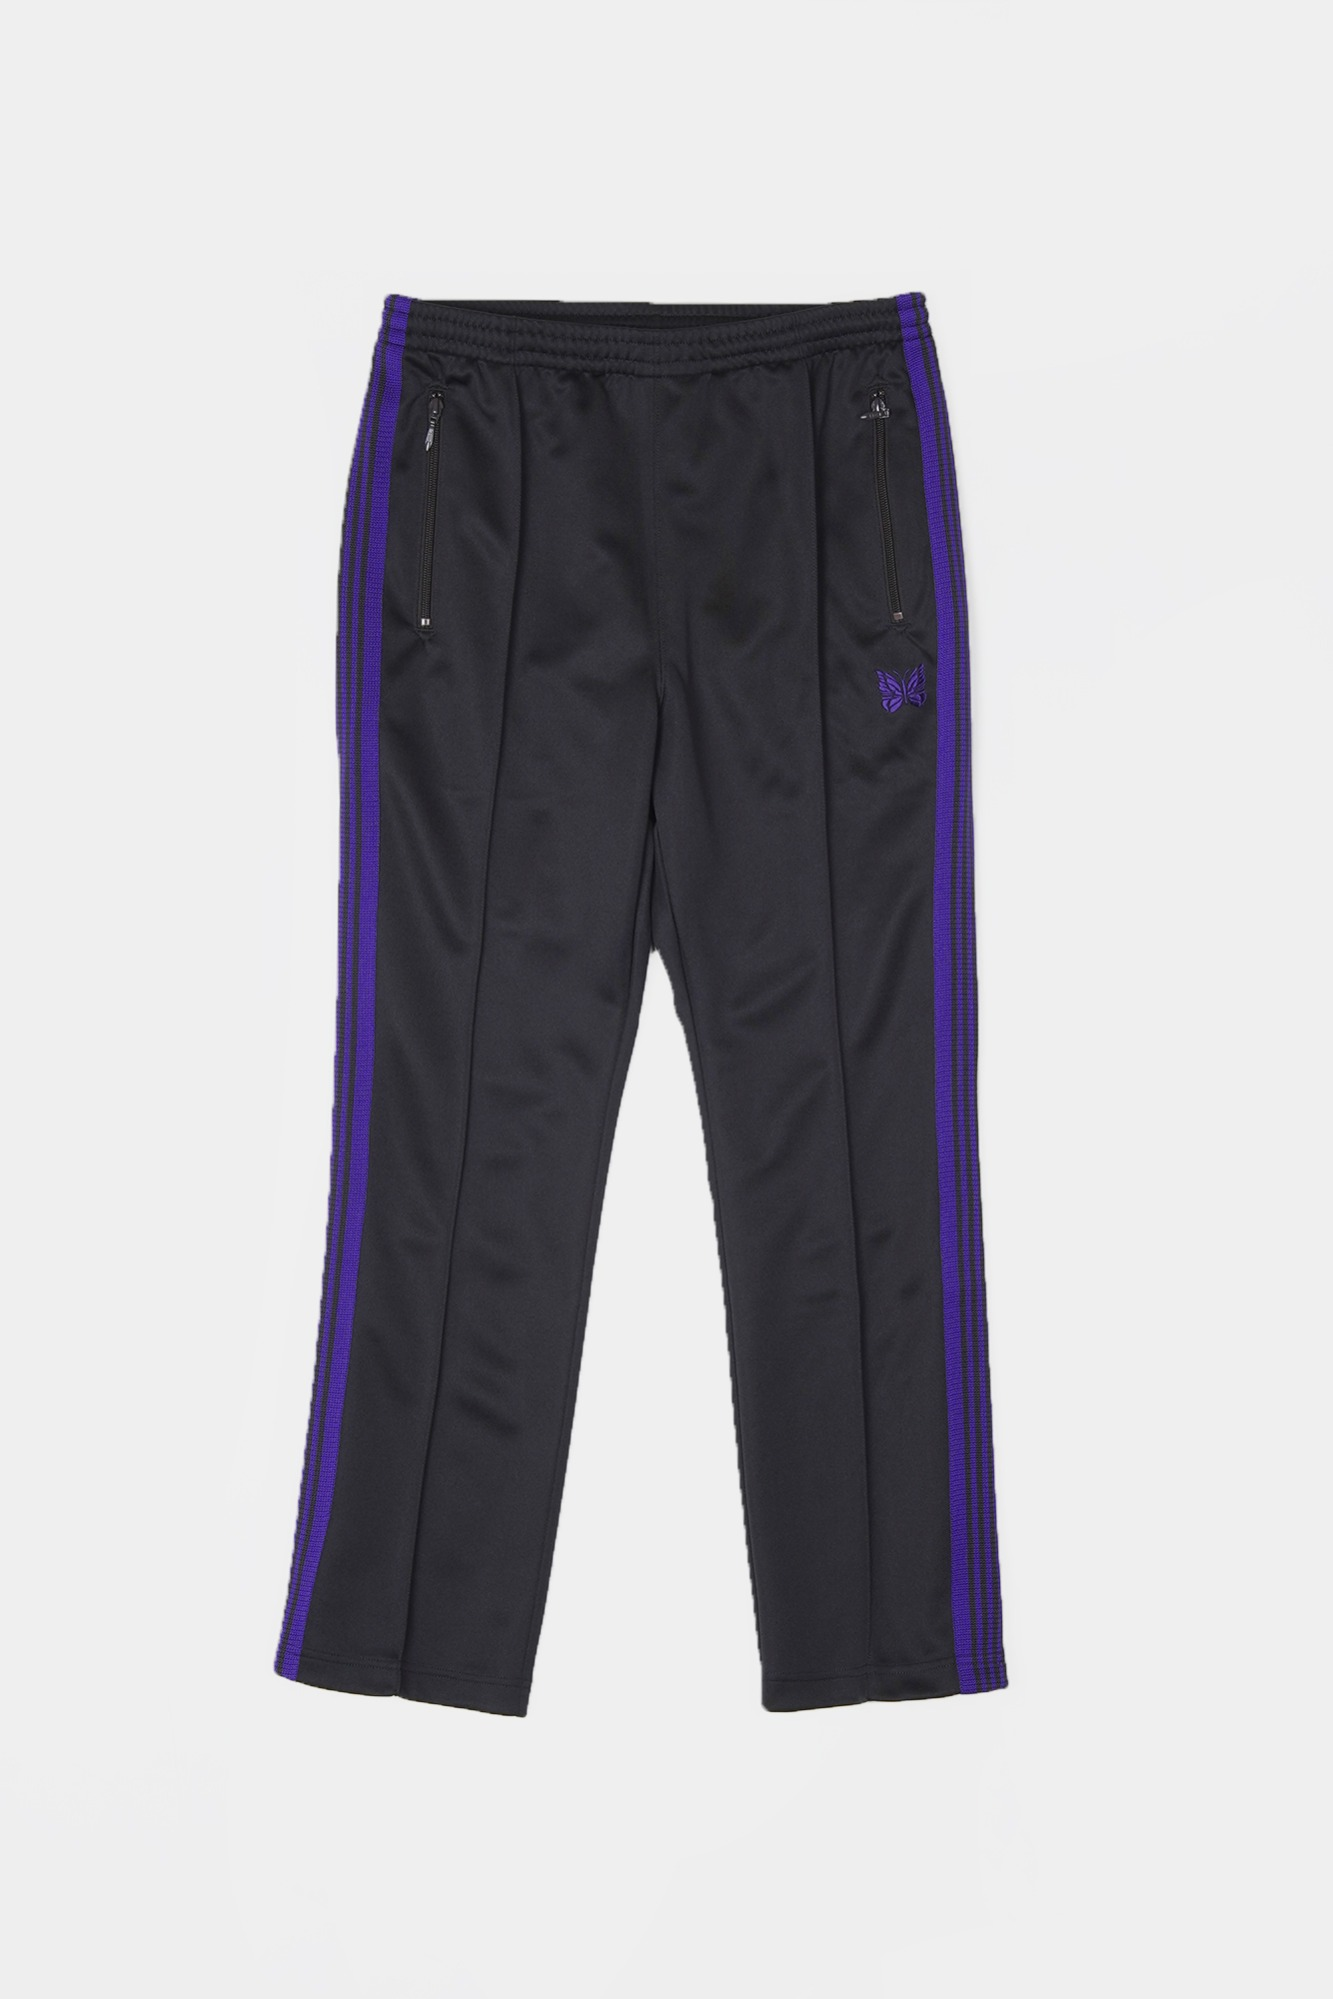 "NEEDLES Narrow Track Poly Smooth Pant ""Charcoal"""